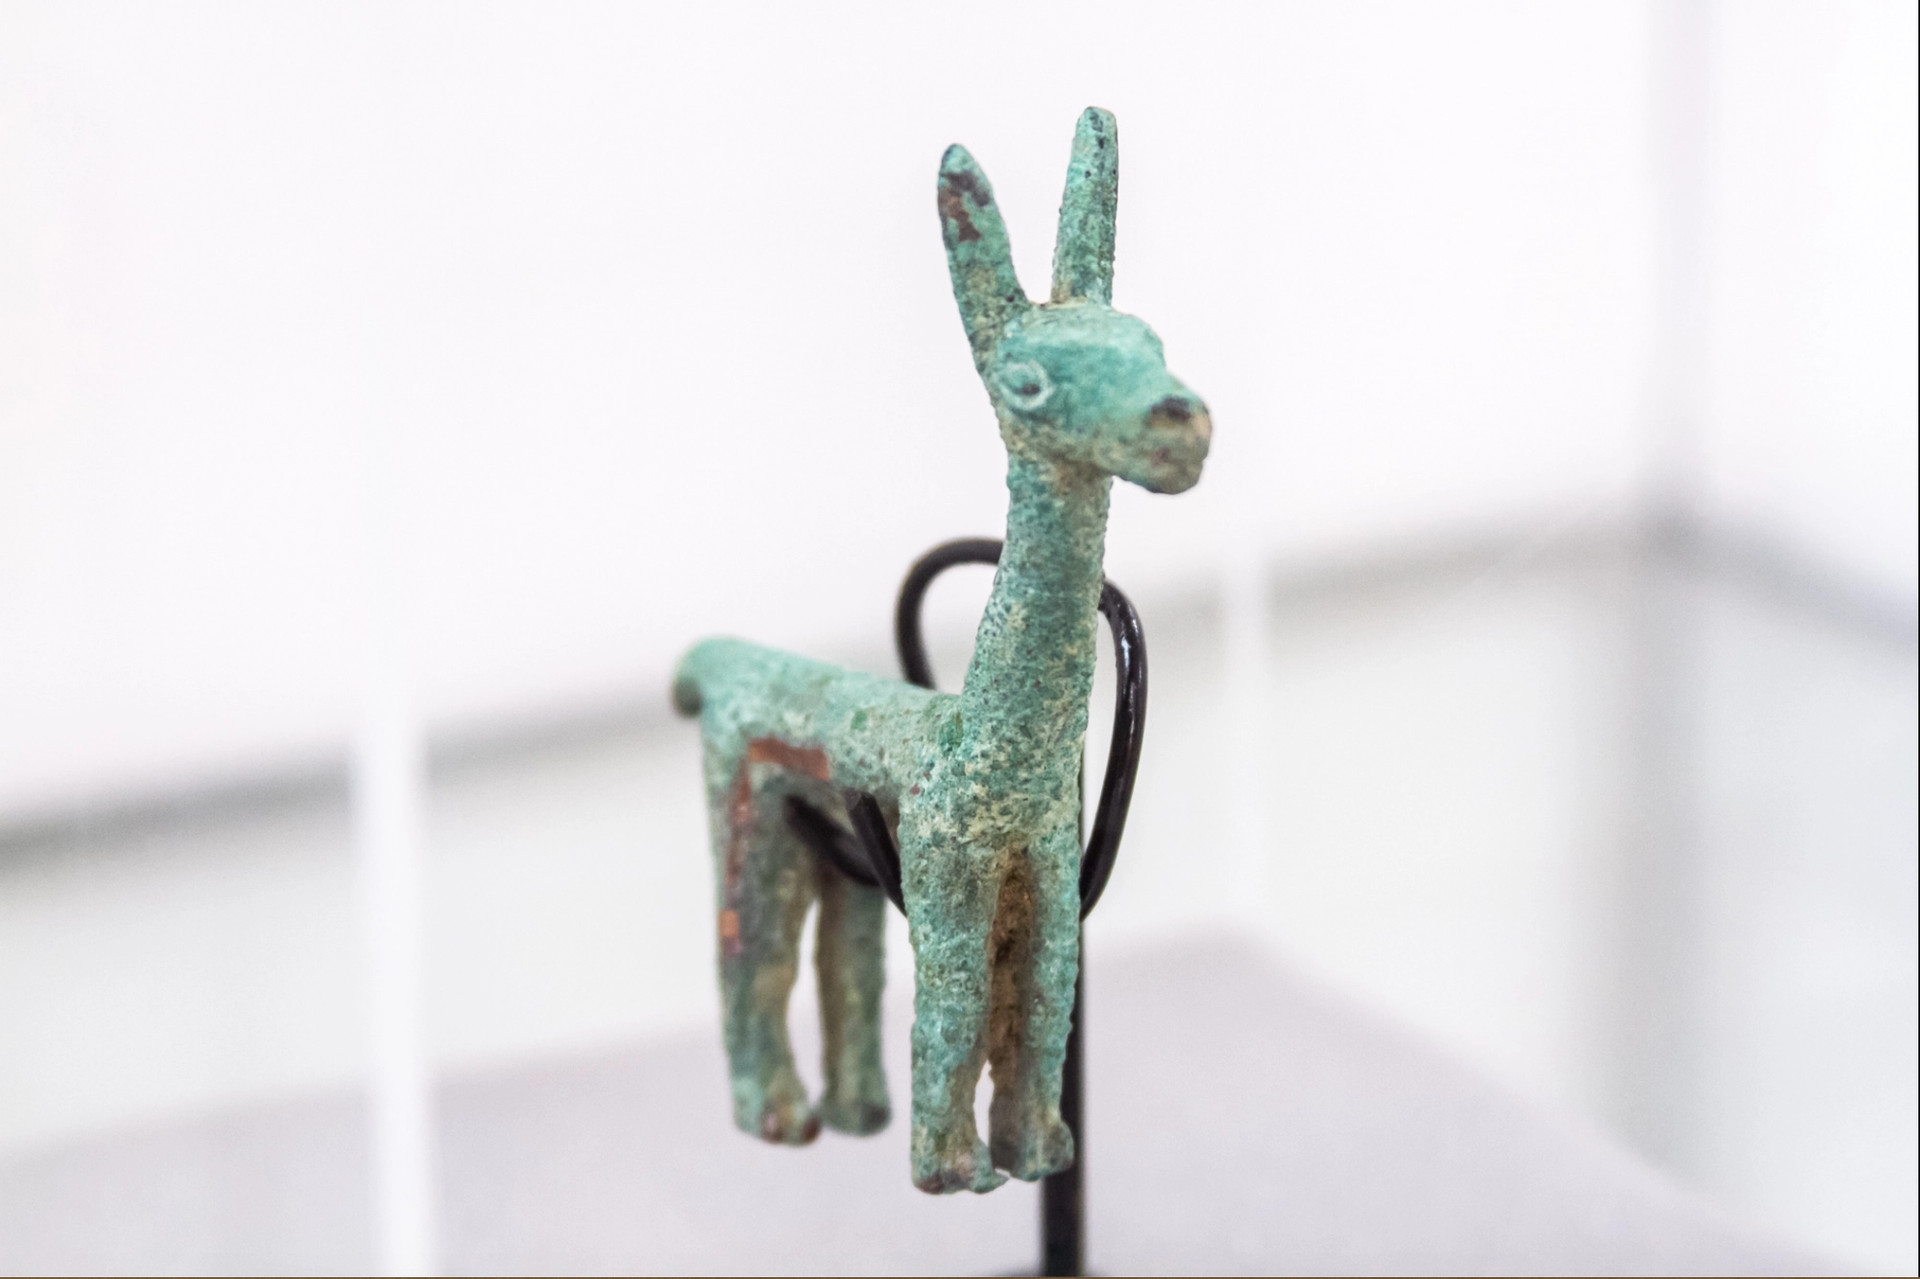 A zoomorphic figure a collection of 536 artefacts illegally taken out of Ecuador by a German national. The objects were returned in October 2019. To educate the public, the collection and the story of its restitution were exhibited by Unesco . © INCP-MCYP, 2020, Ecuador